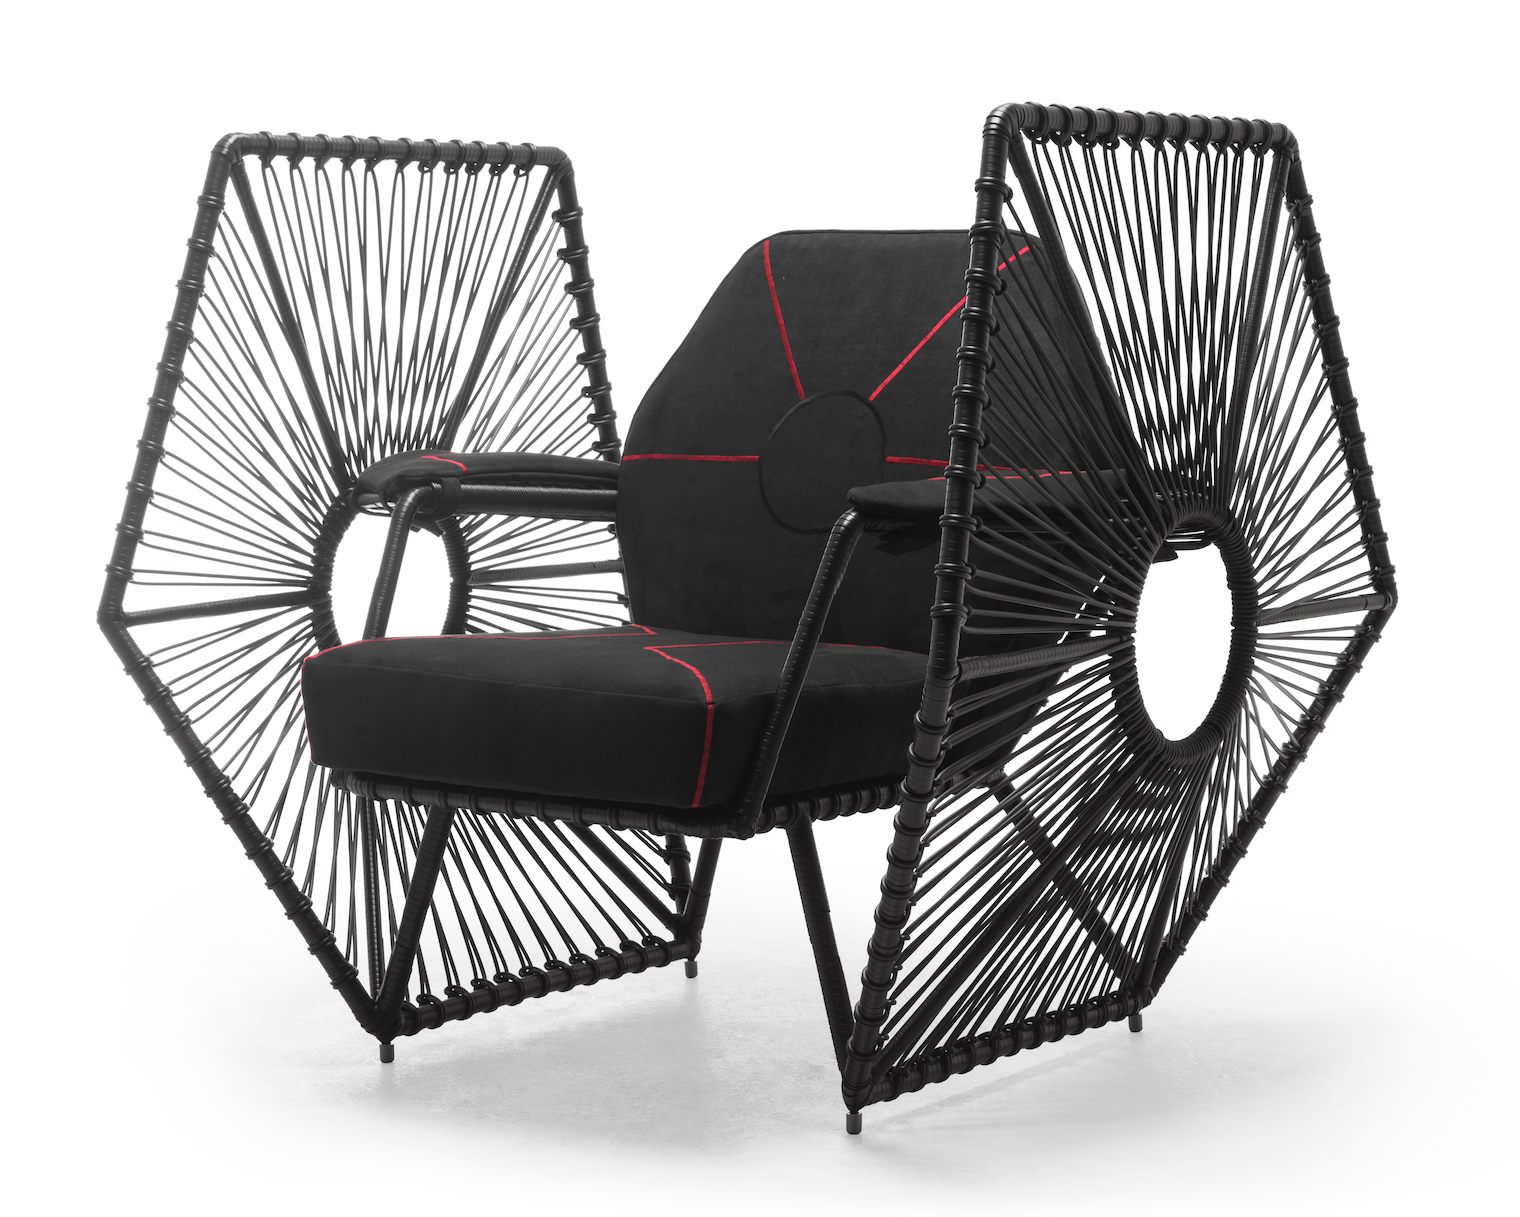 The Star Wars Furniture You've Always Dreamed About Is Finally Available in the U.S.